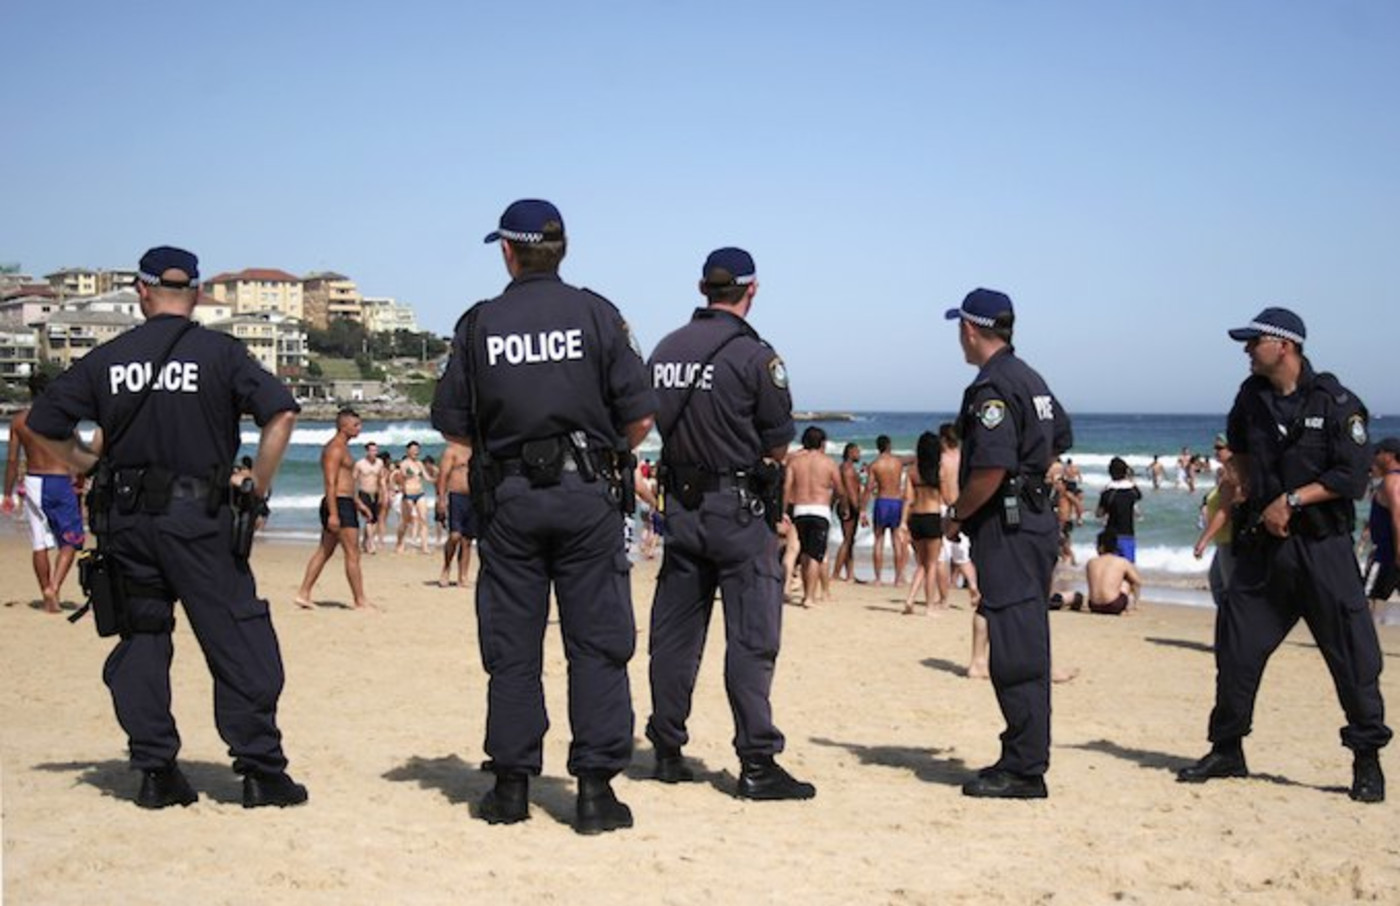 Police on the beach in Bondi Beach, Australia.